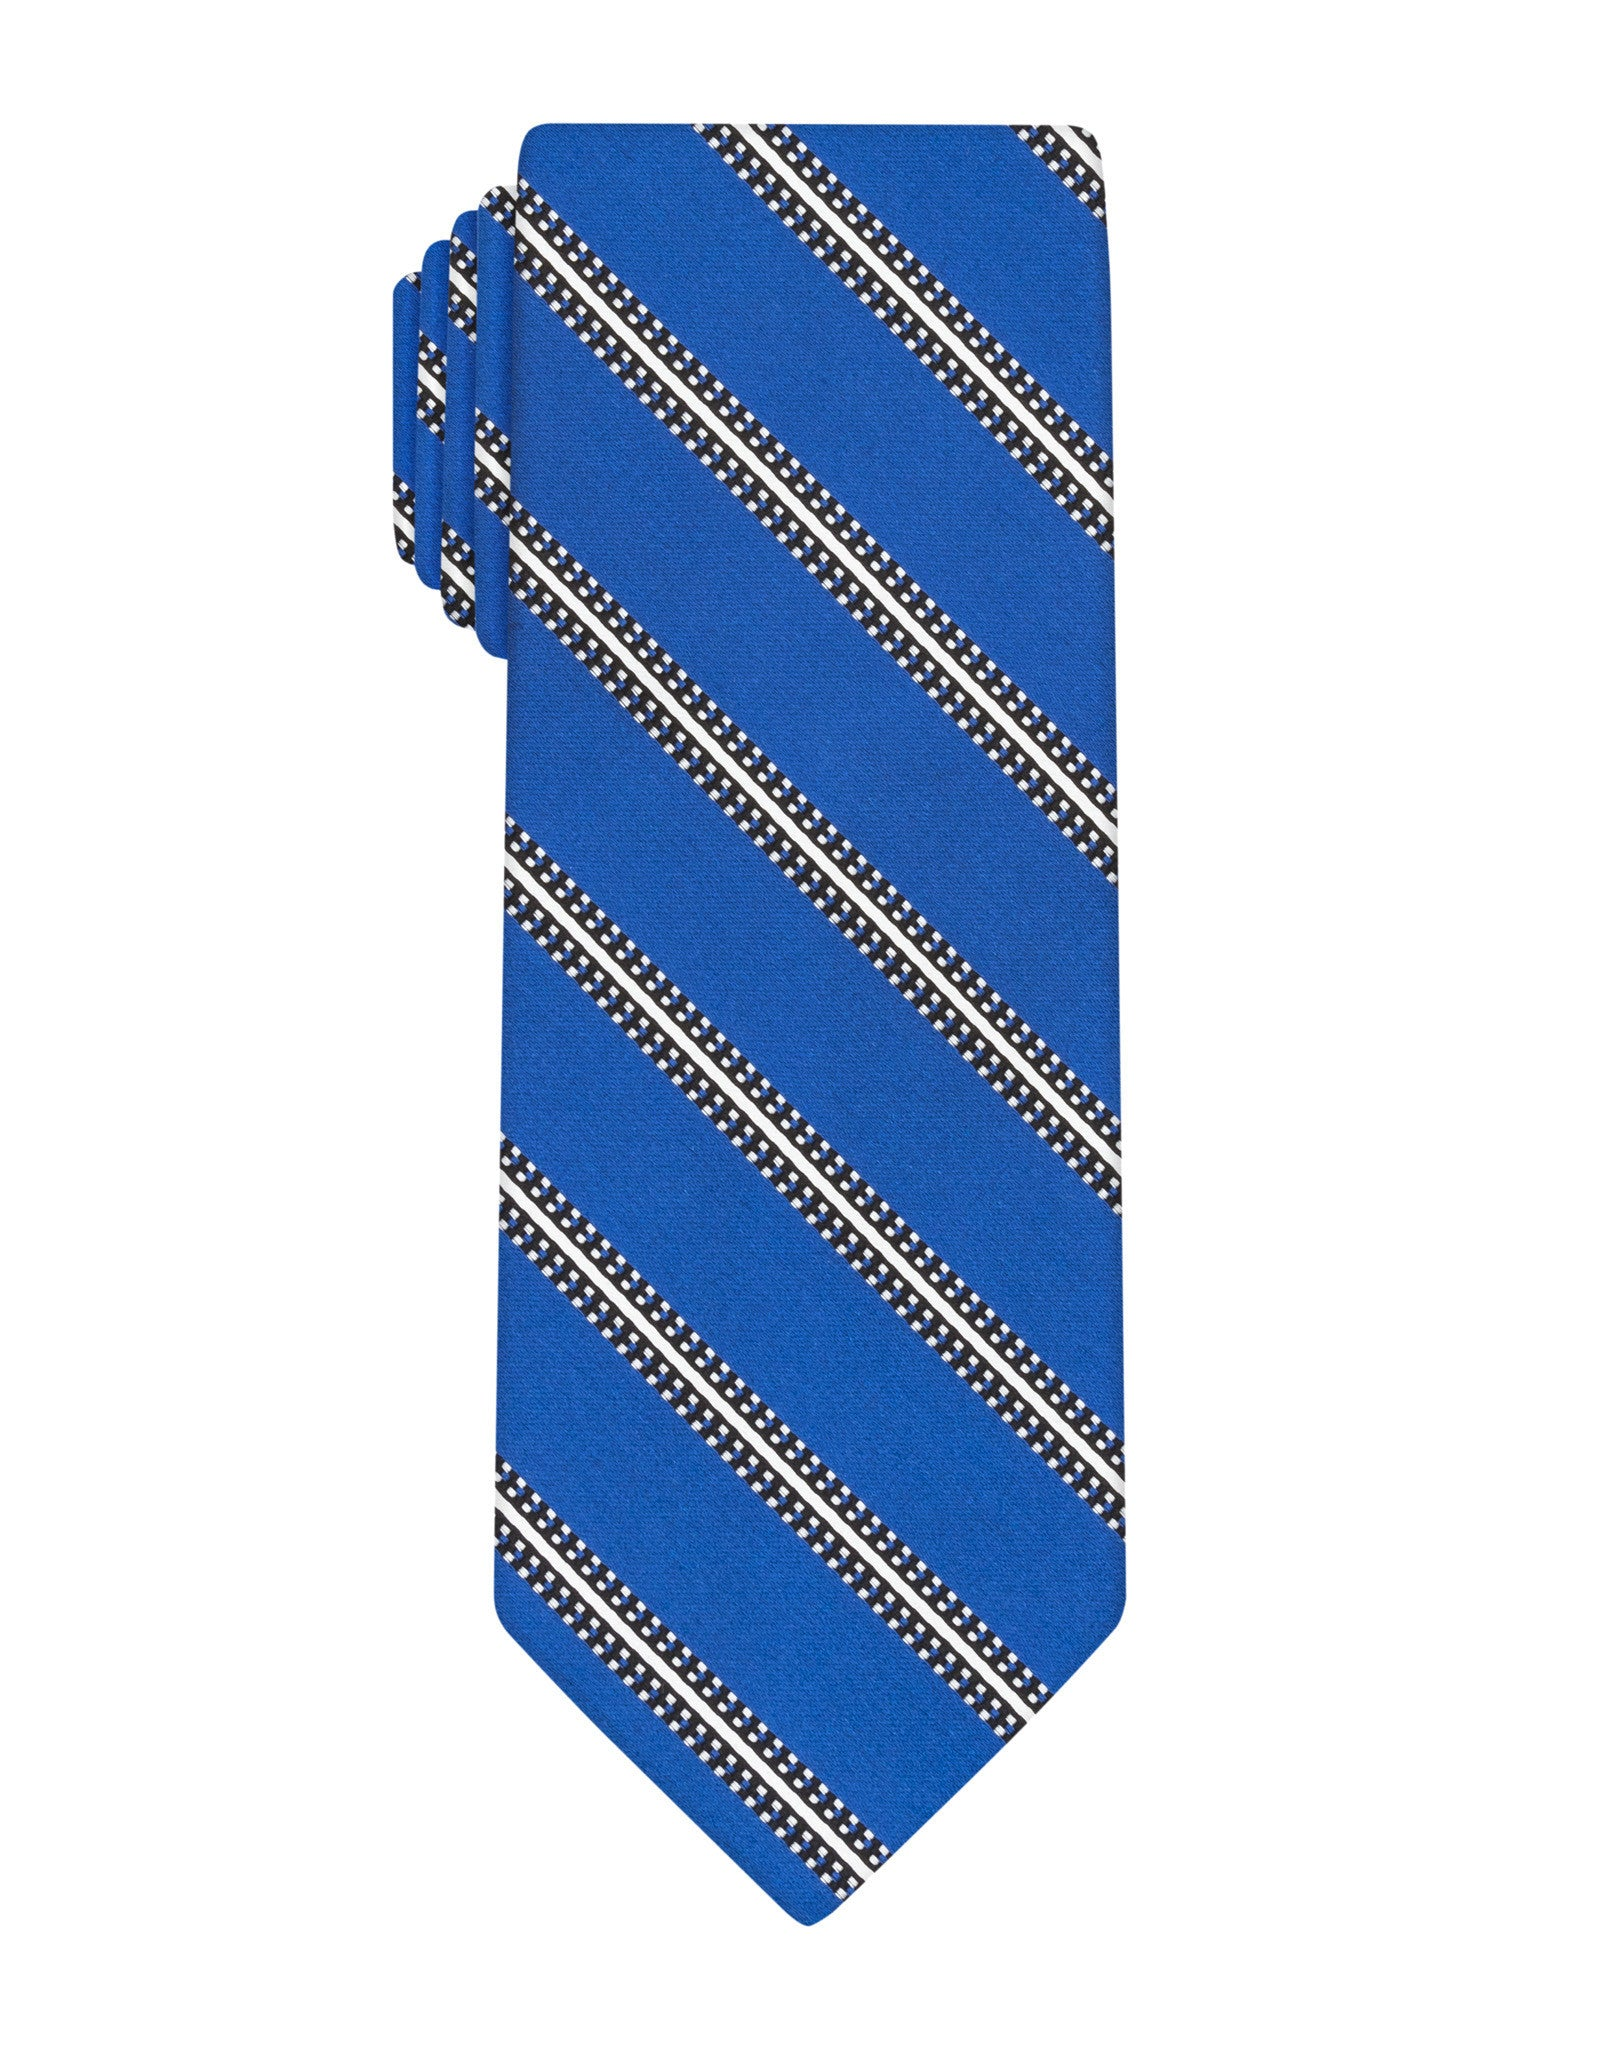 Blue Satin Stripe Tie